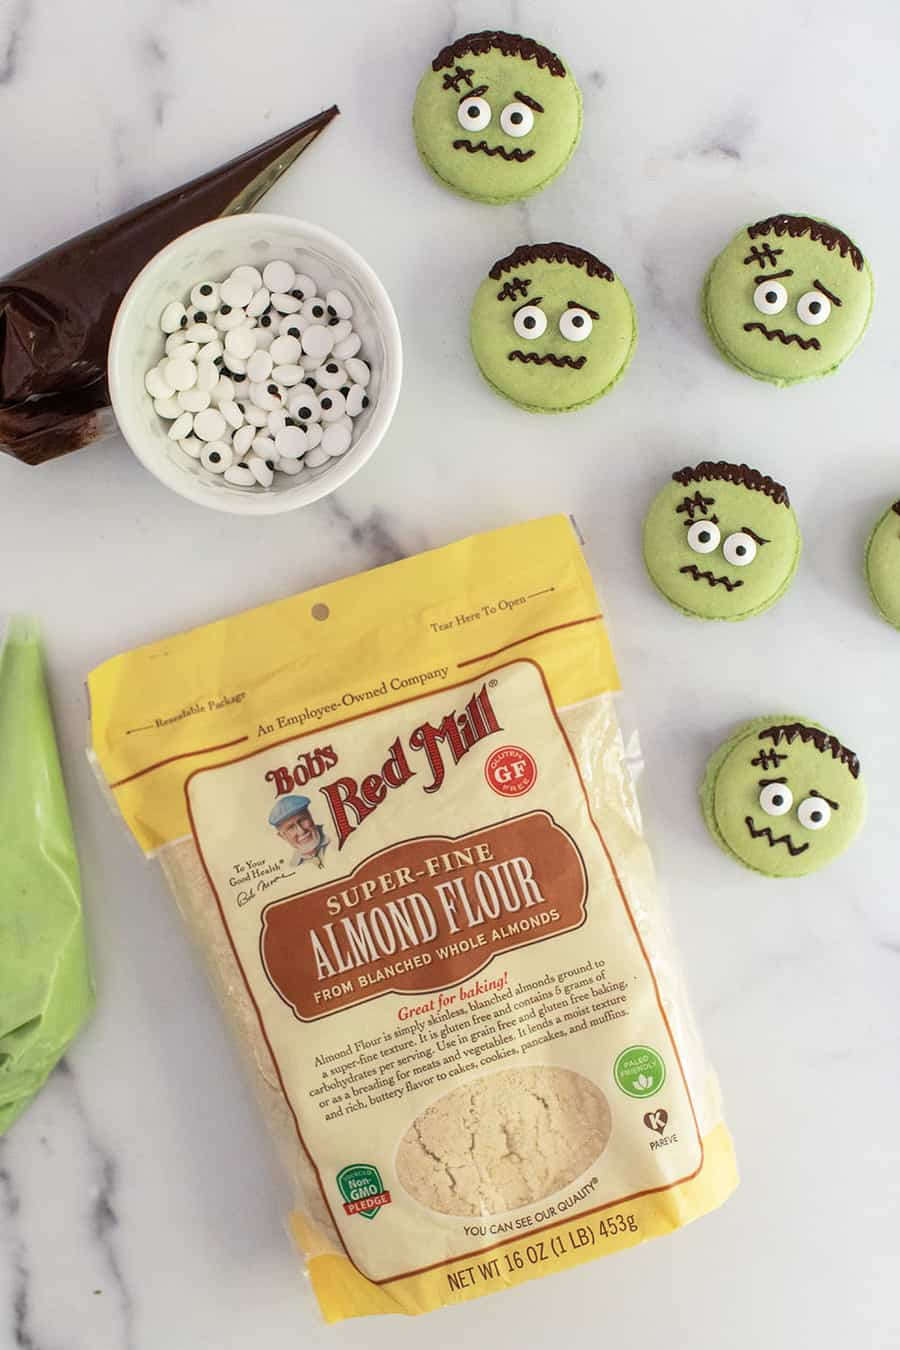 Bob's Red Mill Super Fine Almond Flour with eye sprinkles and green macarons